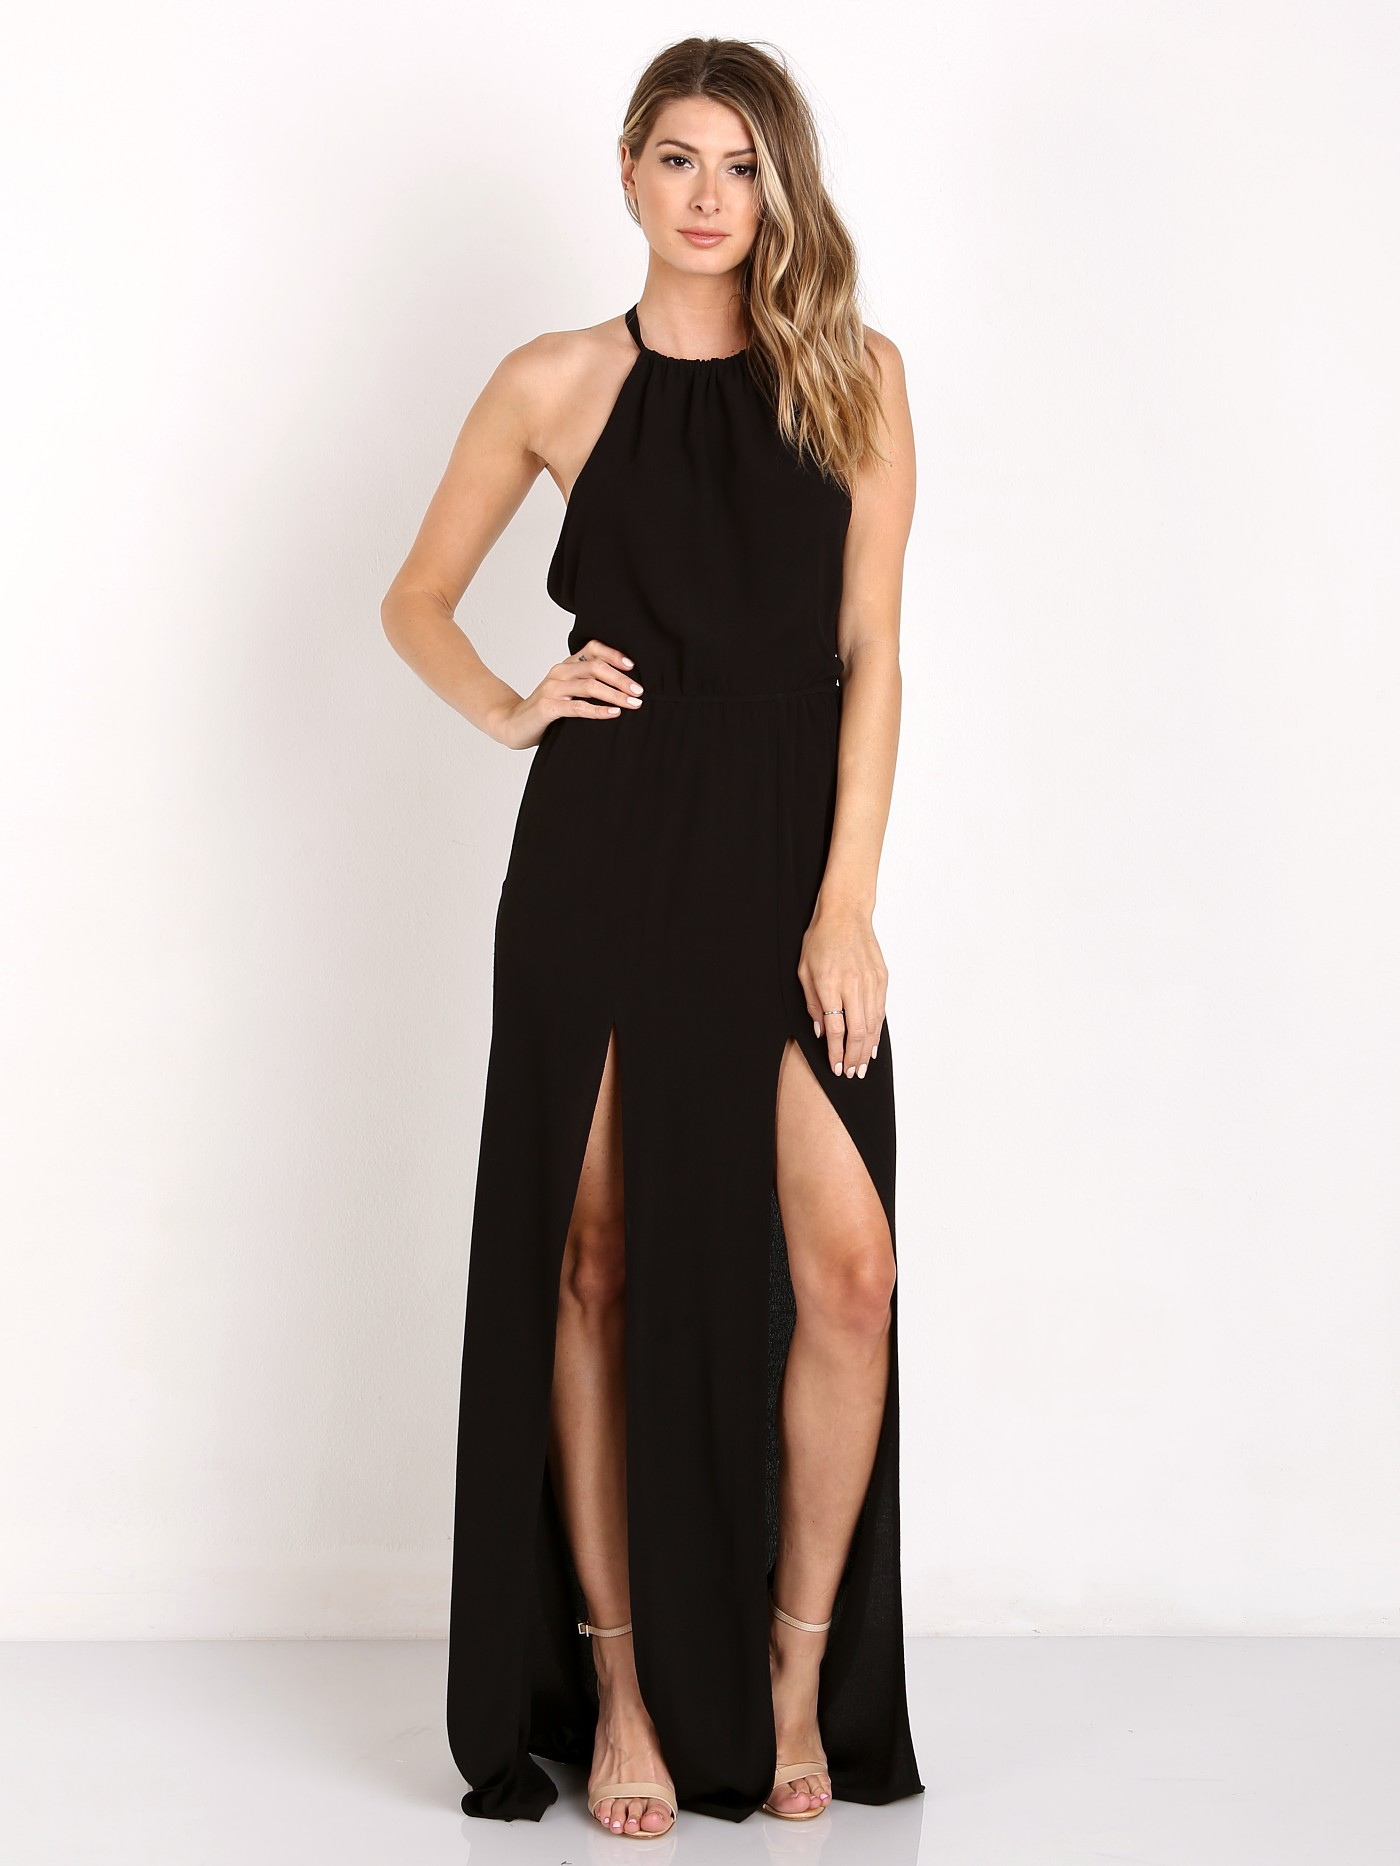 Stone Cold Fox Onyx Gown Black SCFBR107 - Free Shipping at Largo Drive